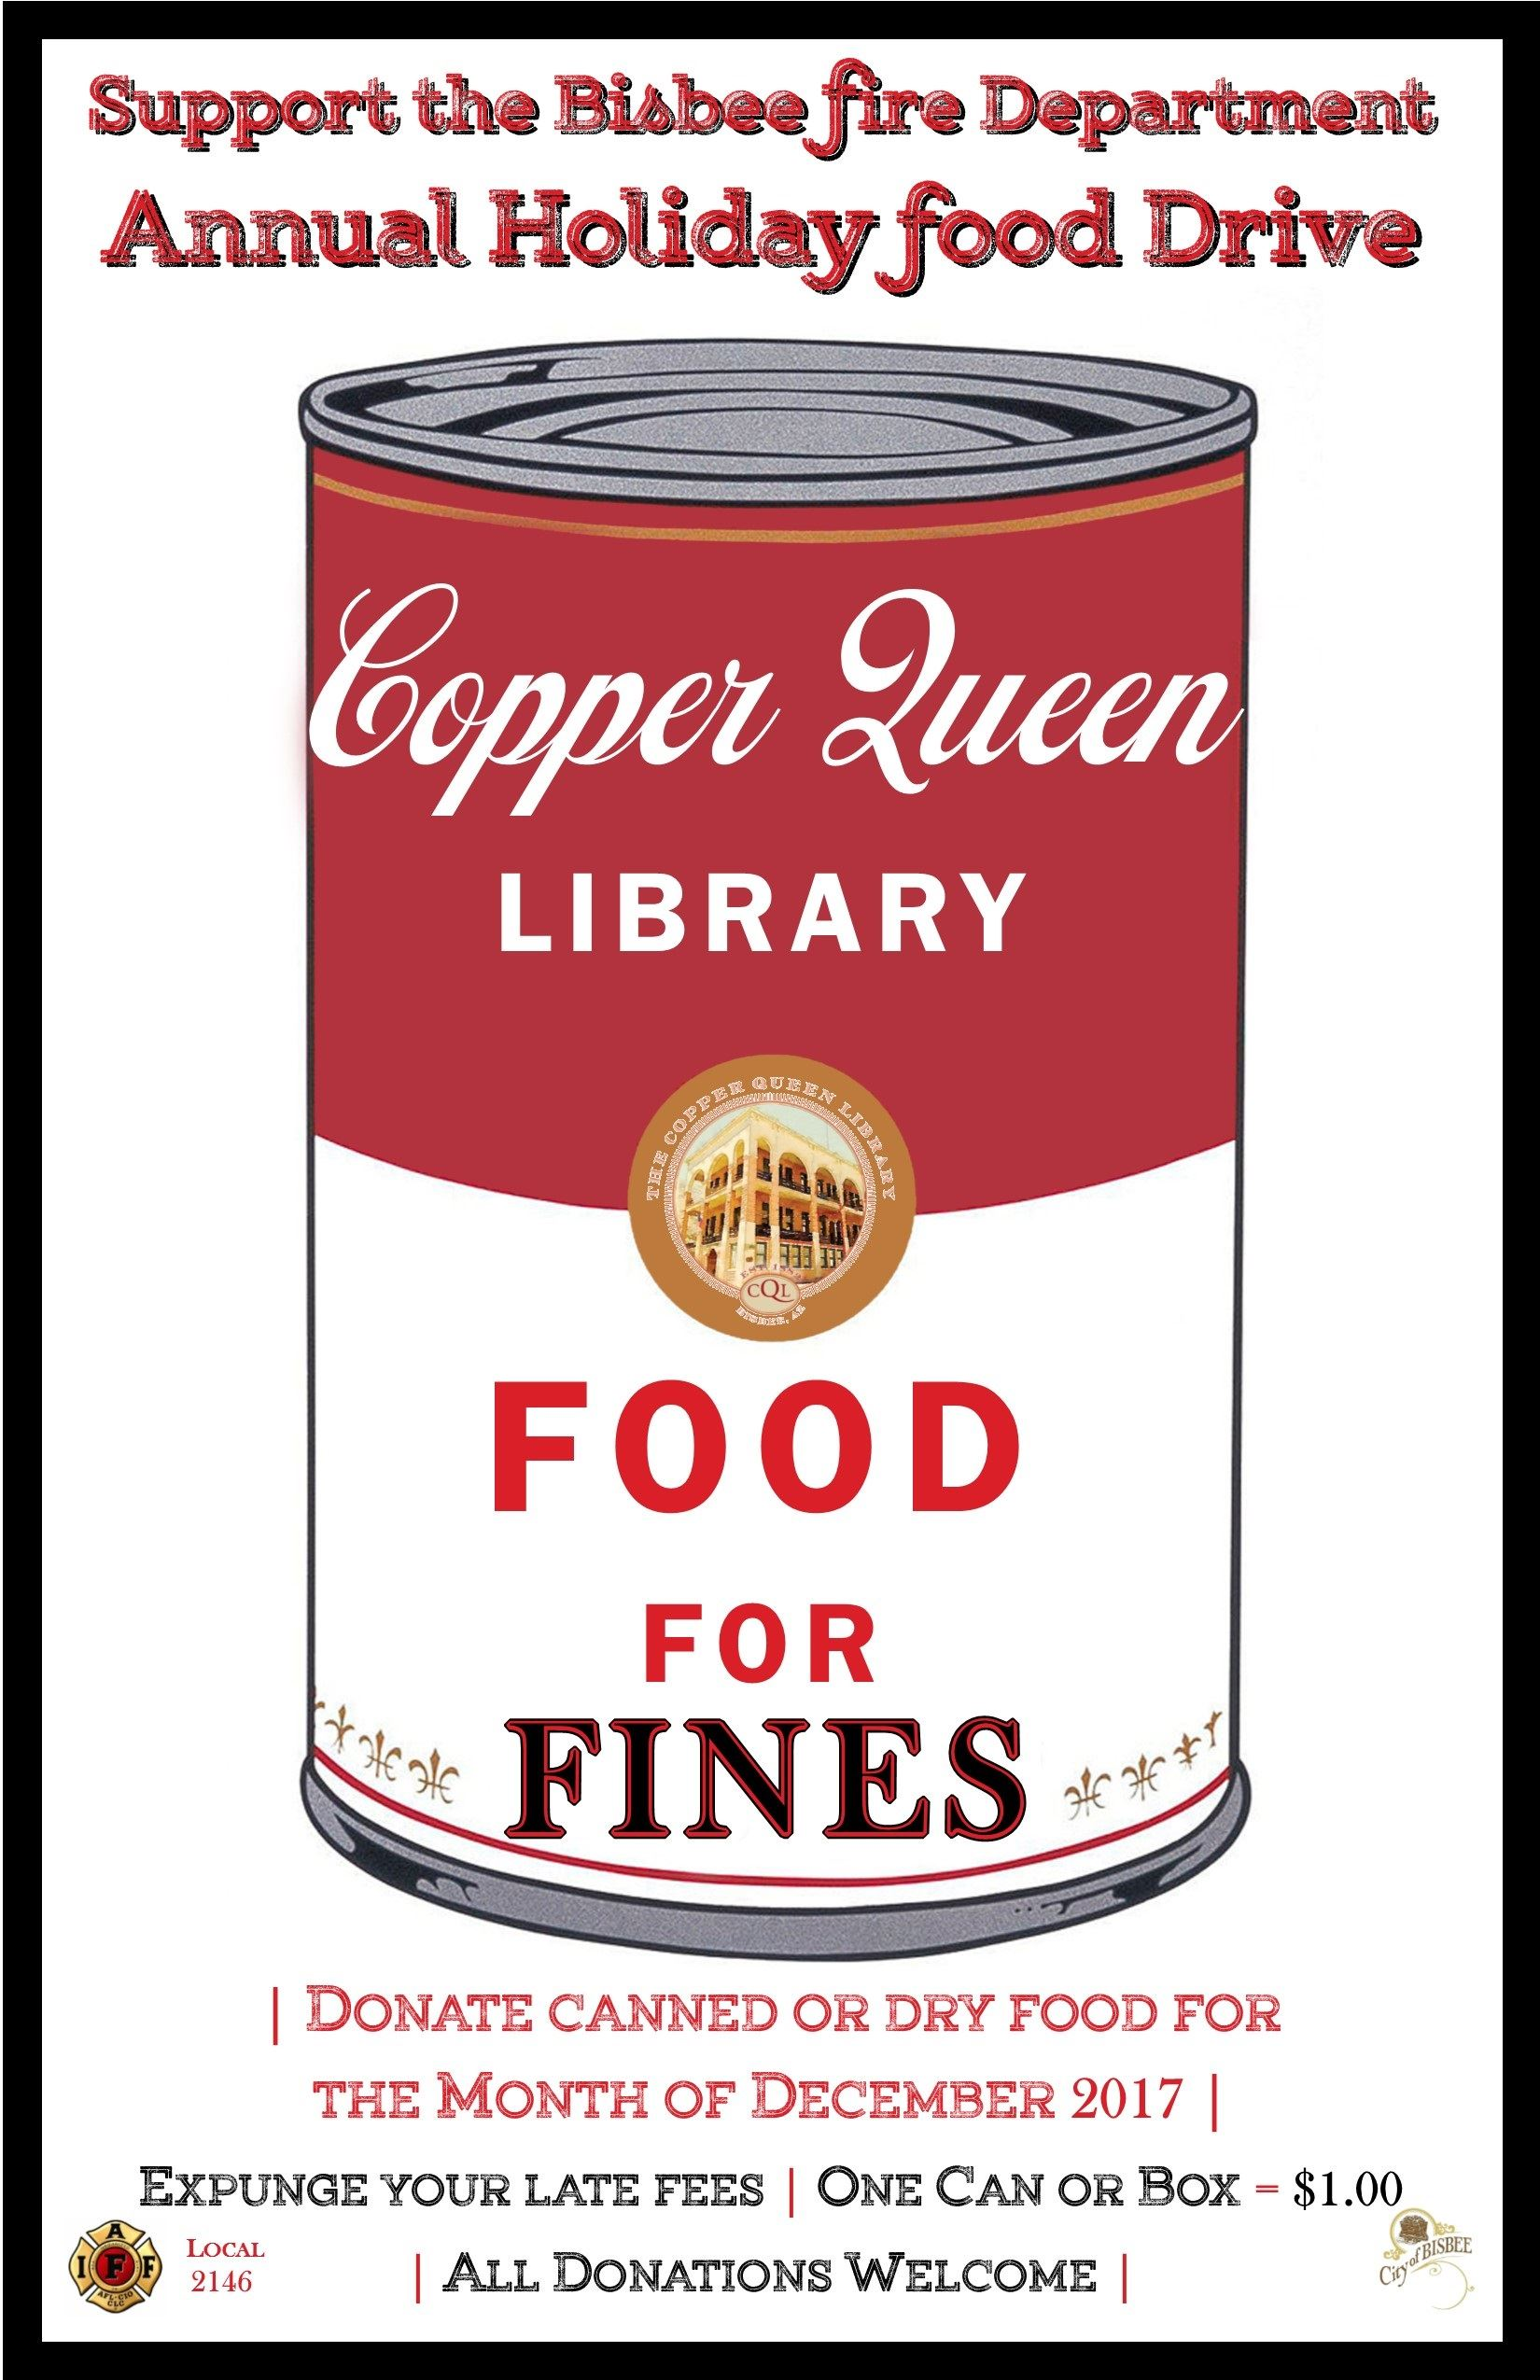 FOOD FOR FINES DEC 2017 11 X 17